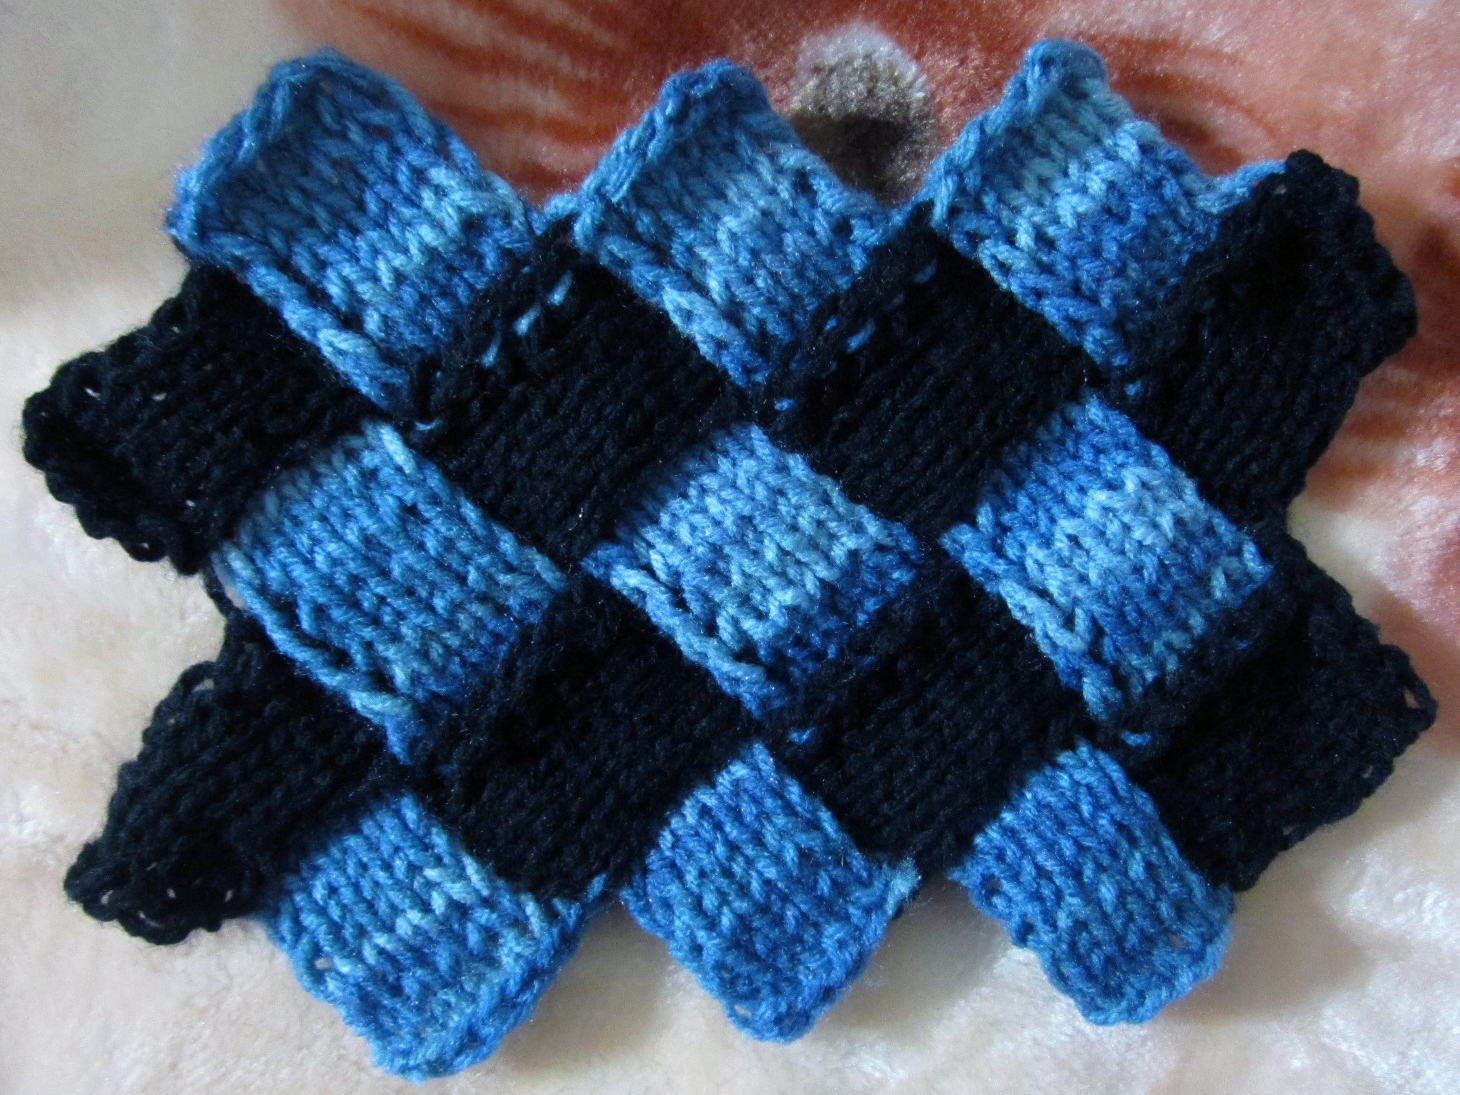 Knitting Tutorial : Image gallery entrelac knitting